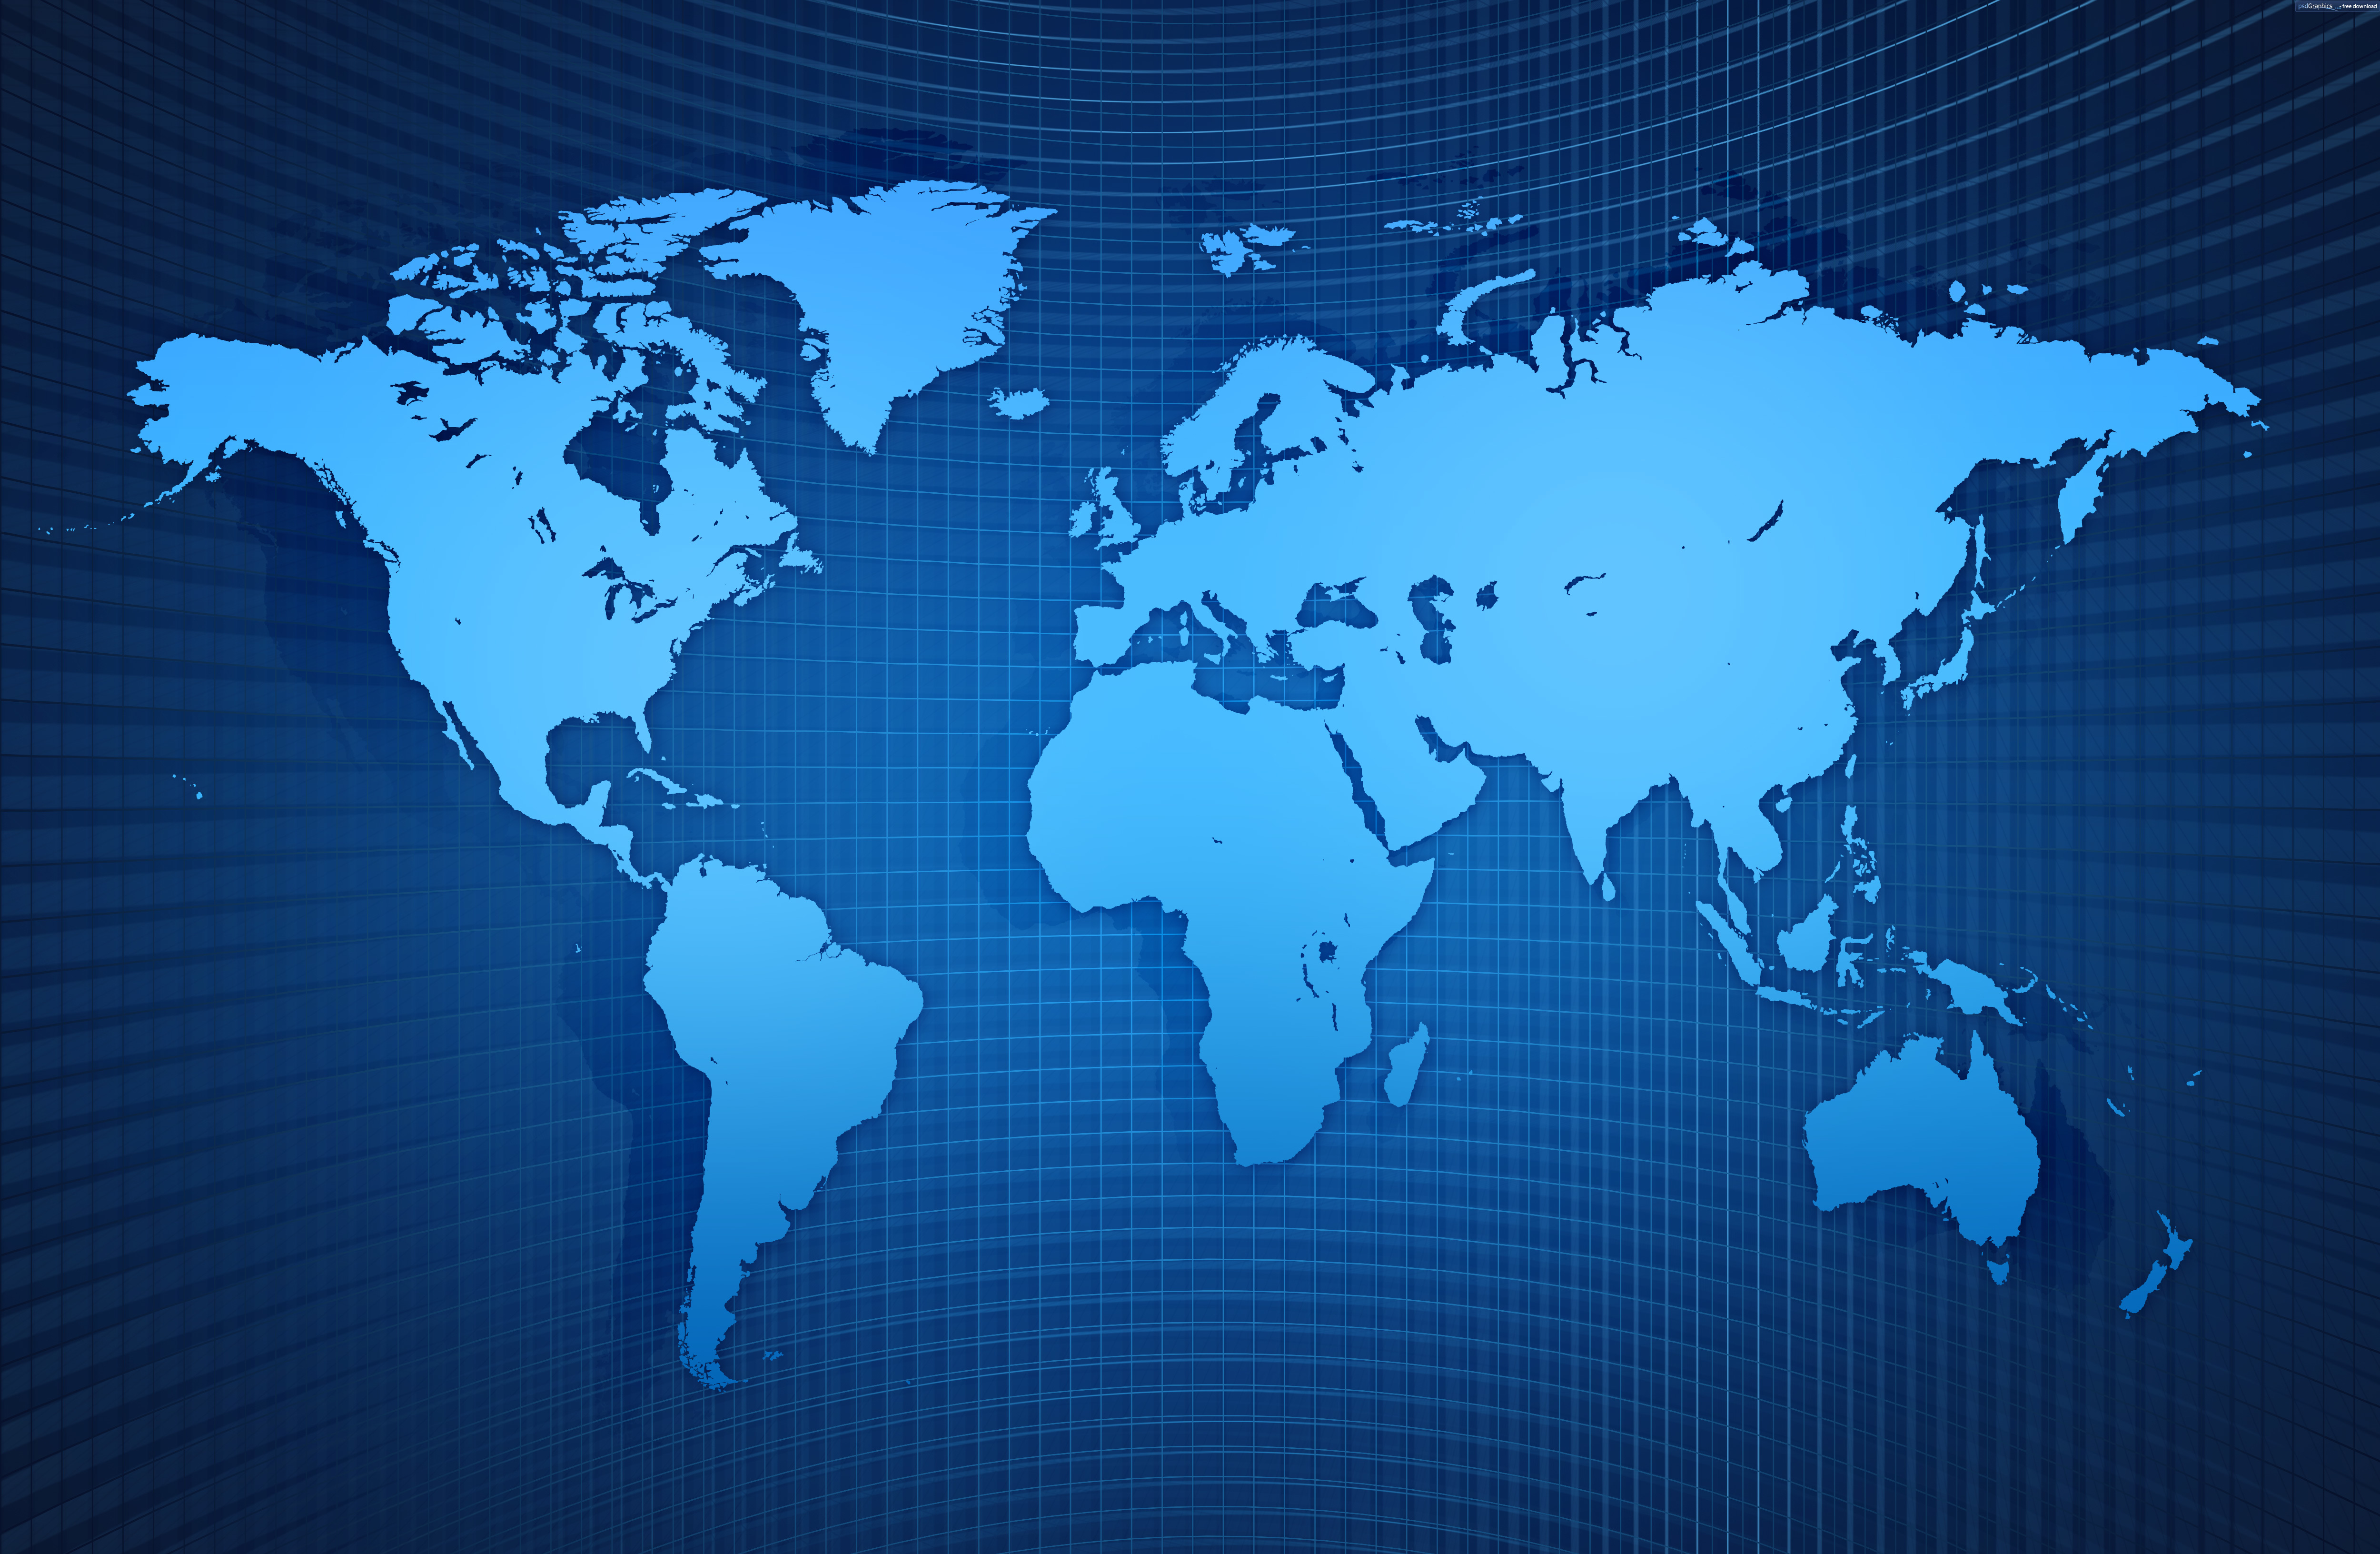 World Map background check